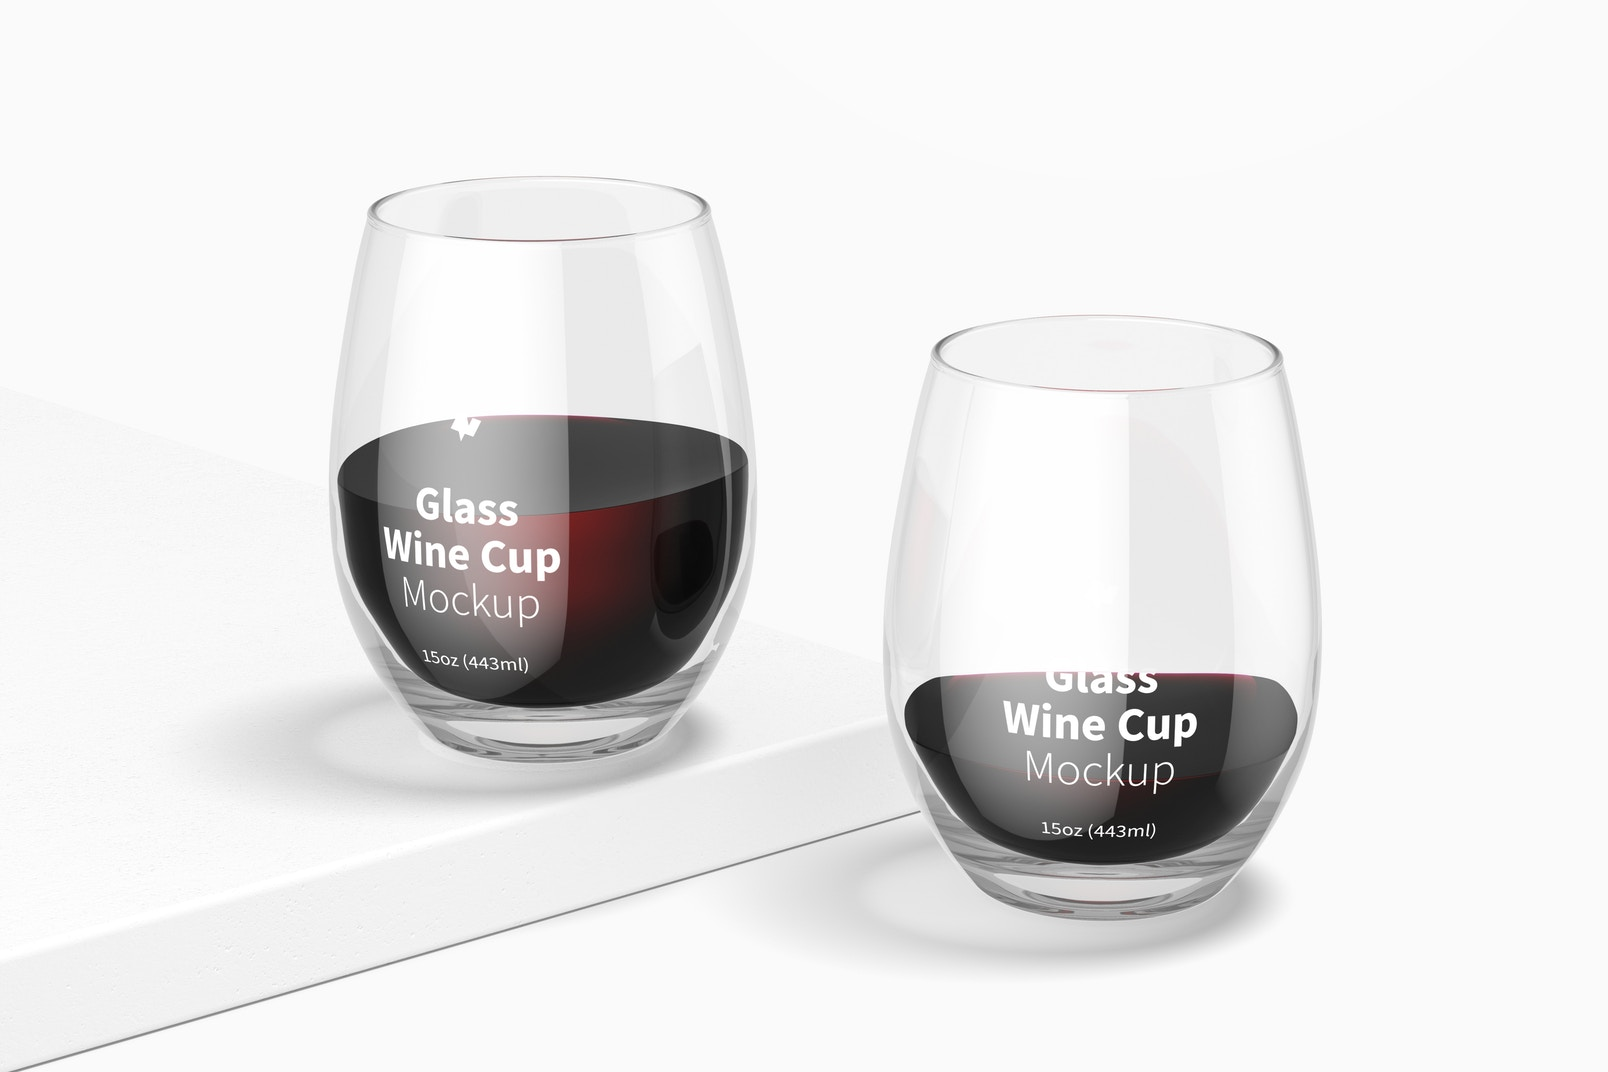 15 oz Glass Wine Cups Mockup, Front View